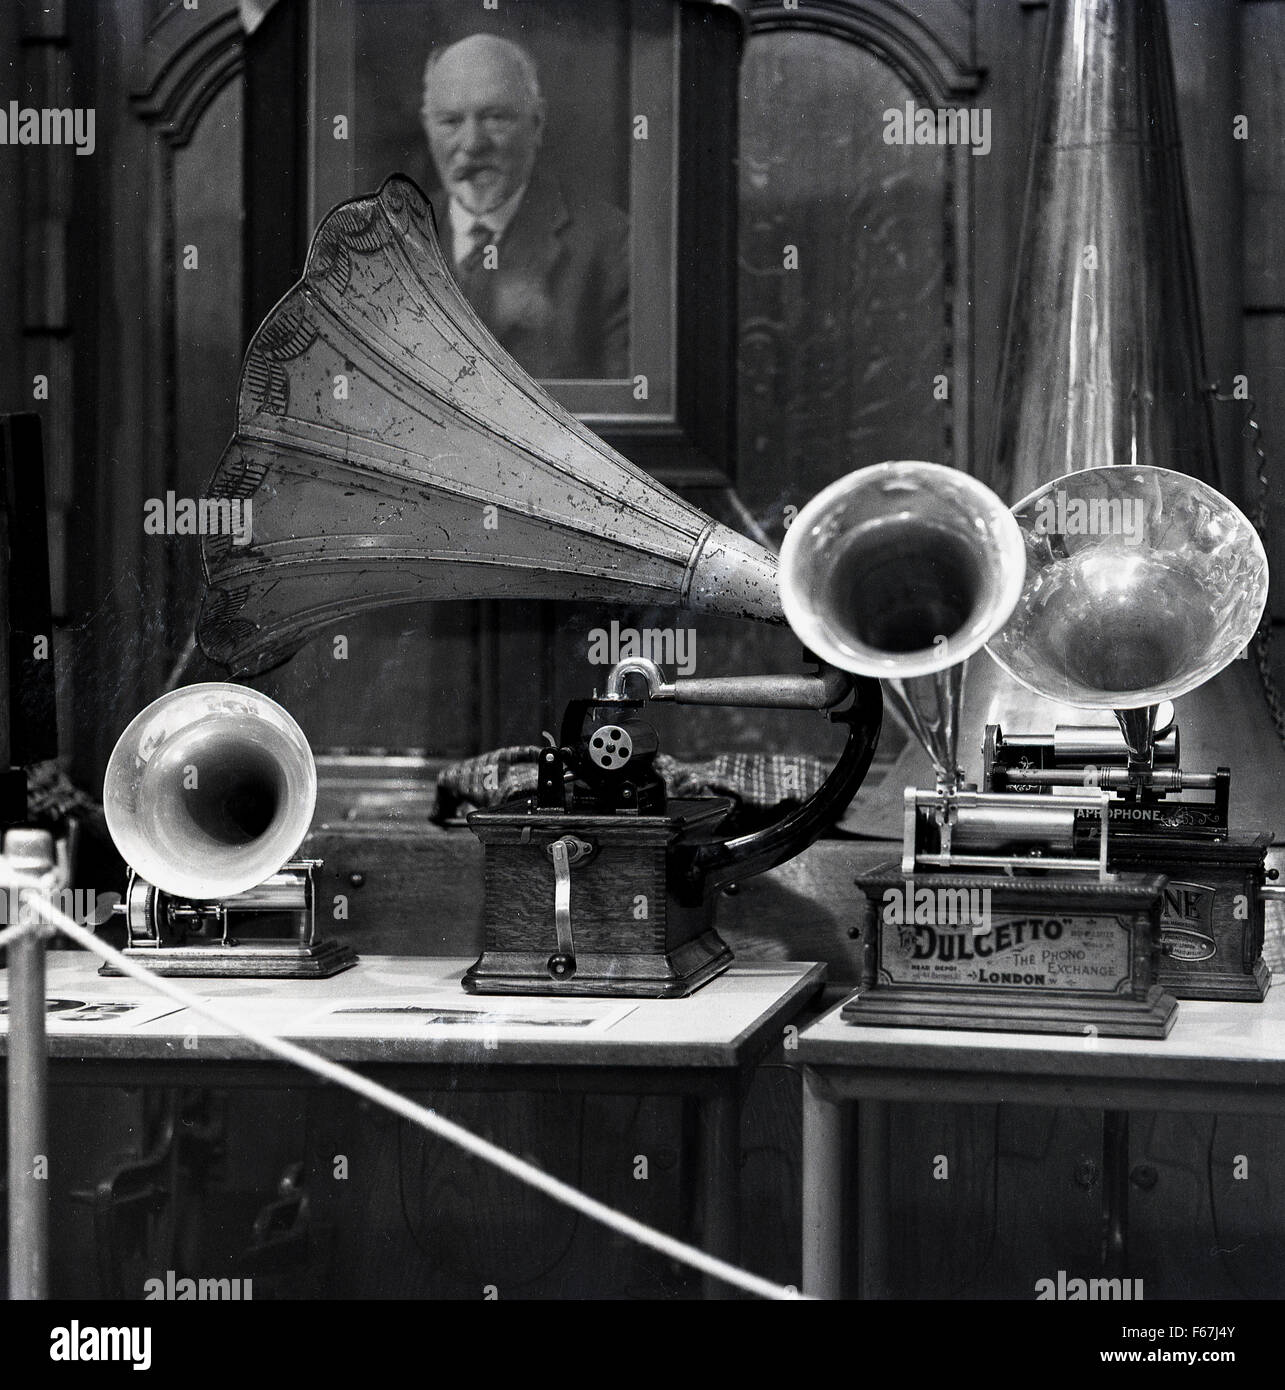 1950s, historical picture of a range of late 19th century musical phonograph (gramophone) cylinder instruments, - Stock Image